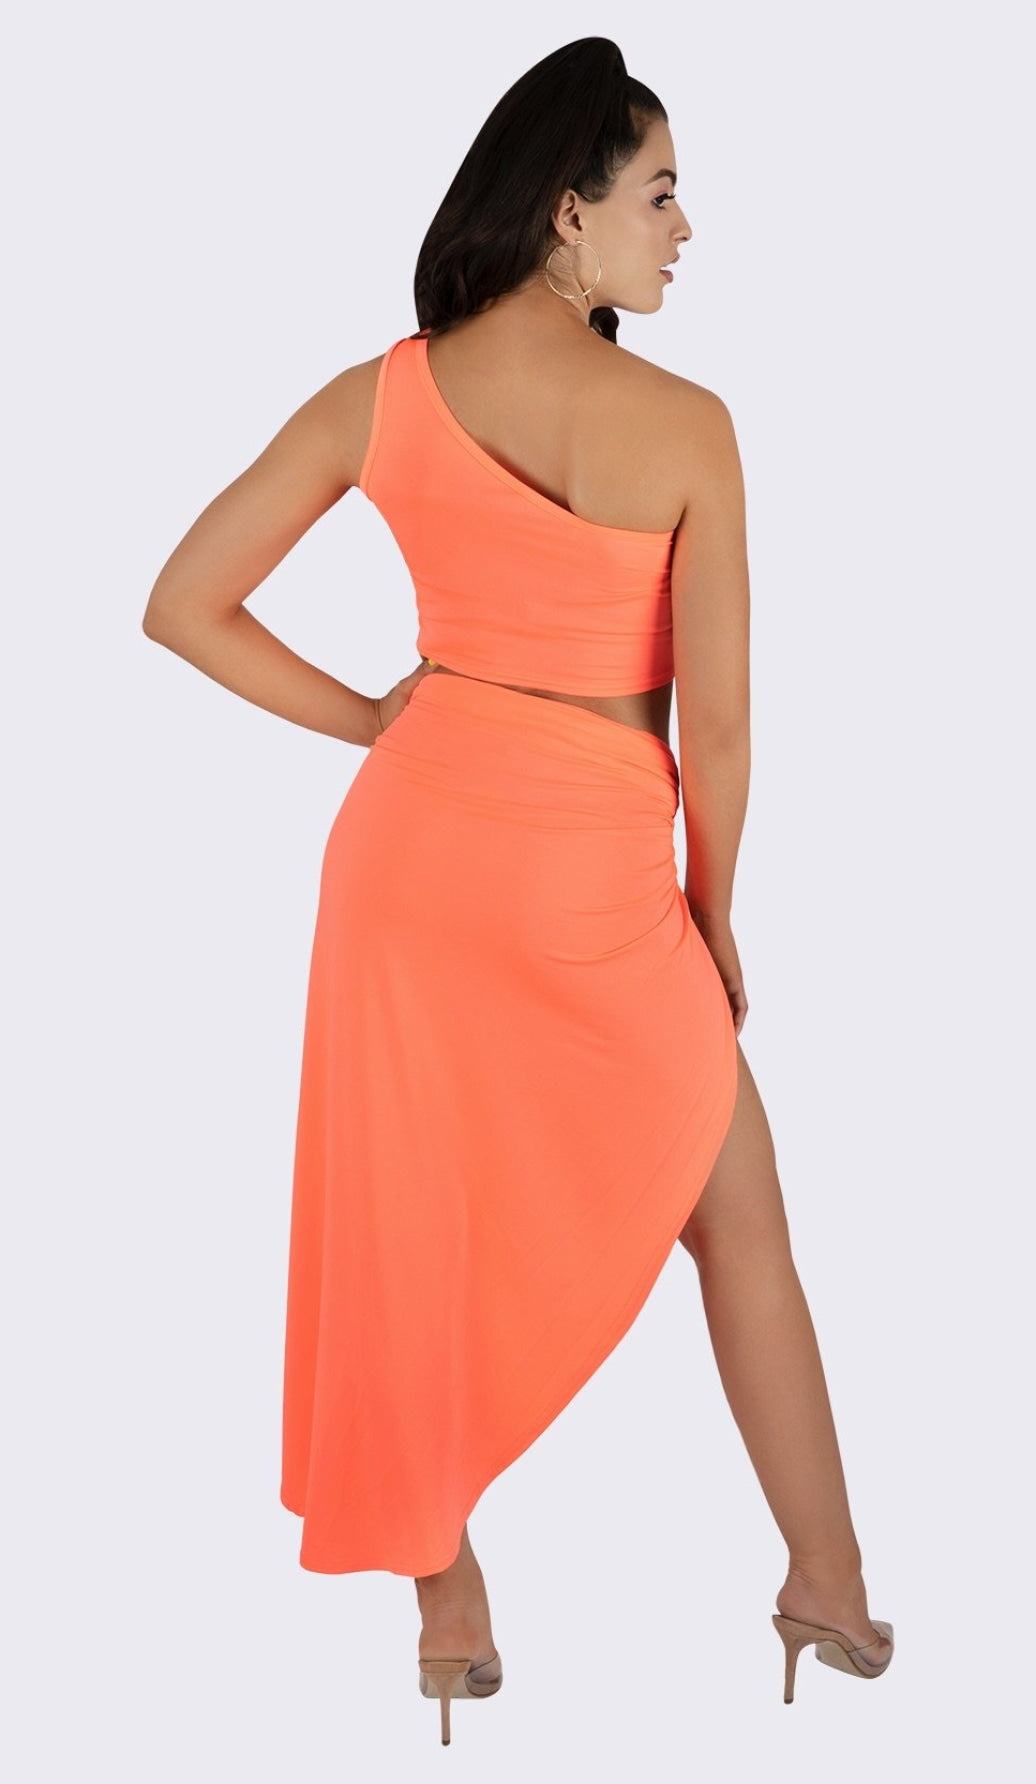 'MIMI' One Shoulder Two Piece Set - Neon Coral - GLAMBAE FASHION